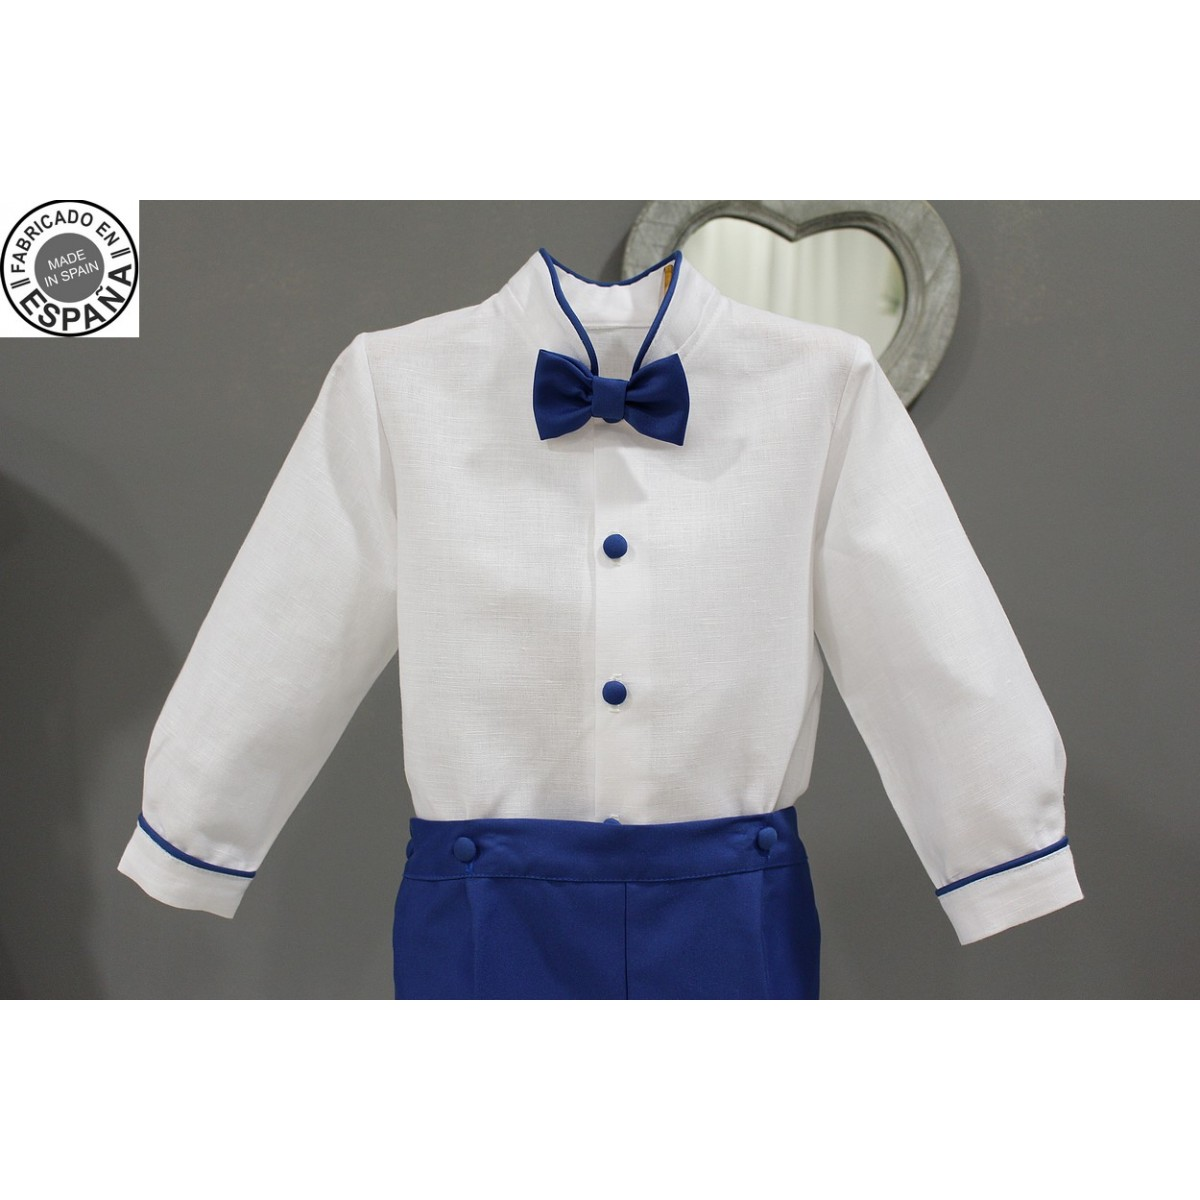 Boy Ring bearer outfit. White linen with royal blue shorts with bow tie and suspenders. Kidu0026#39;s ...